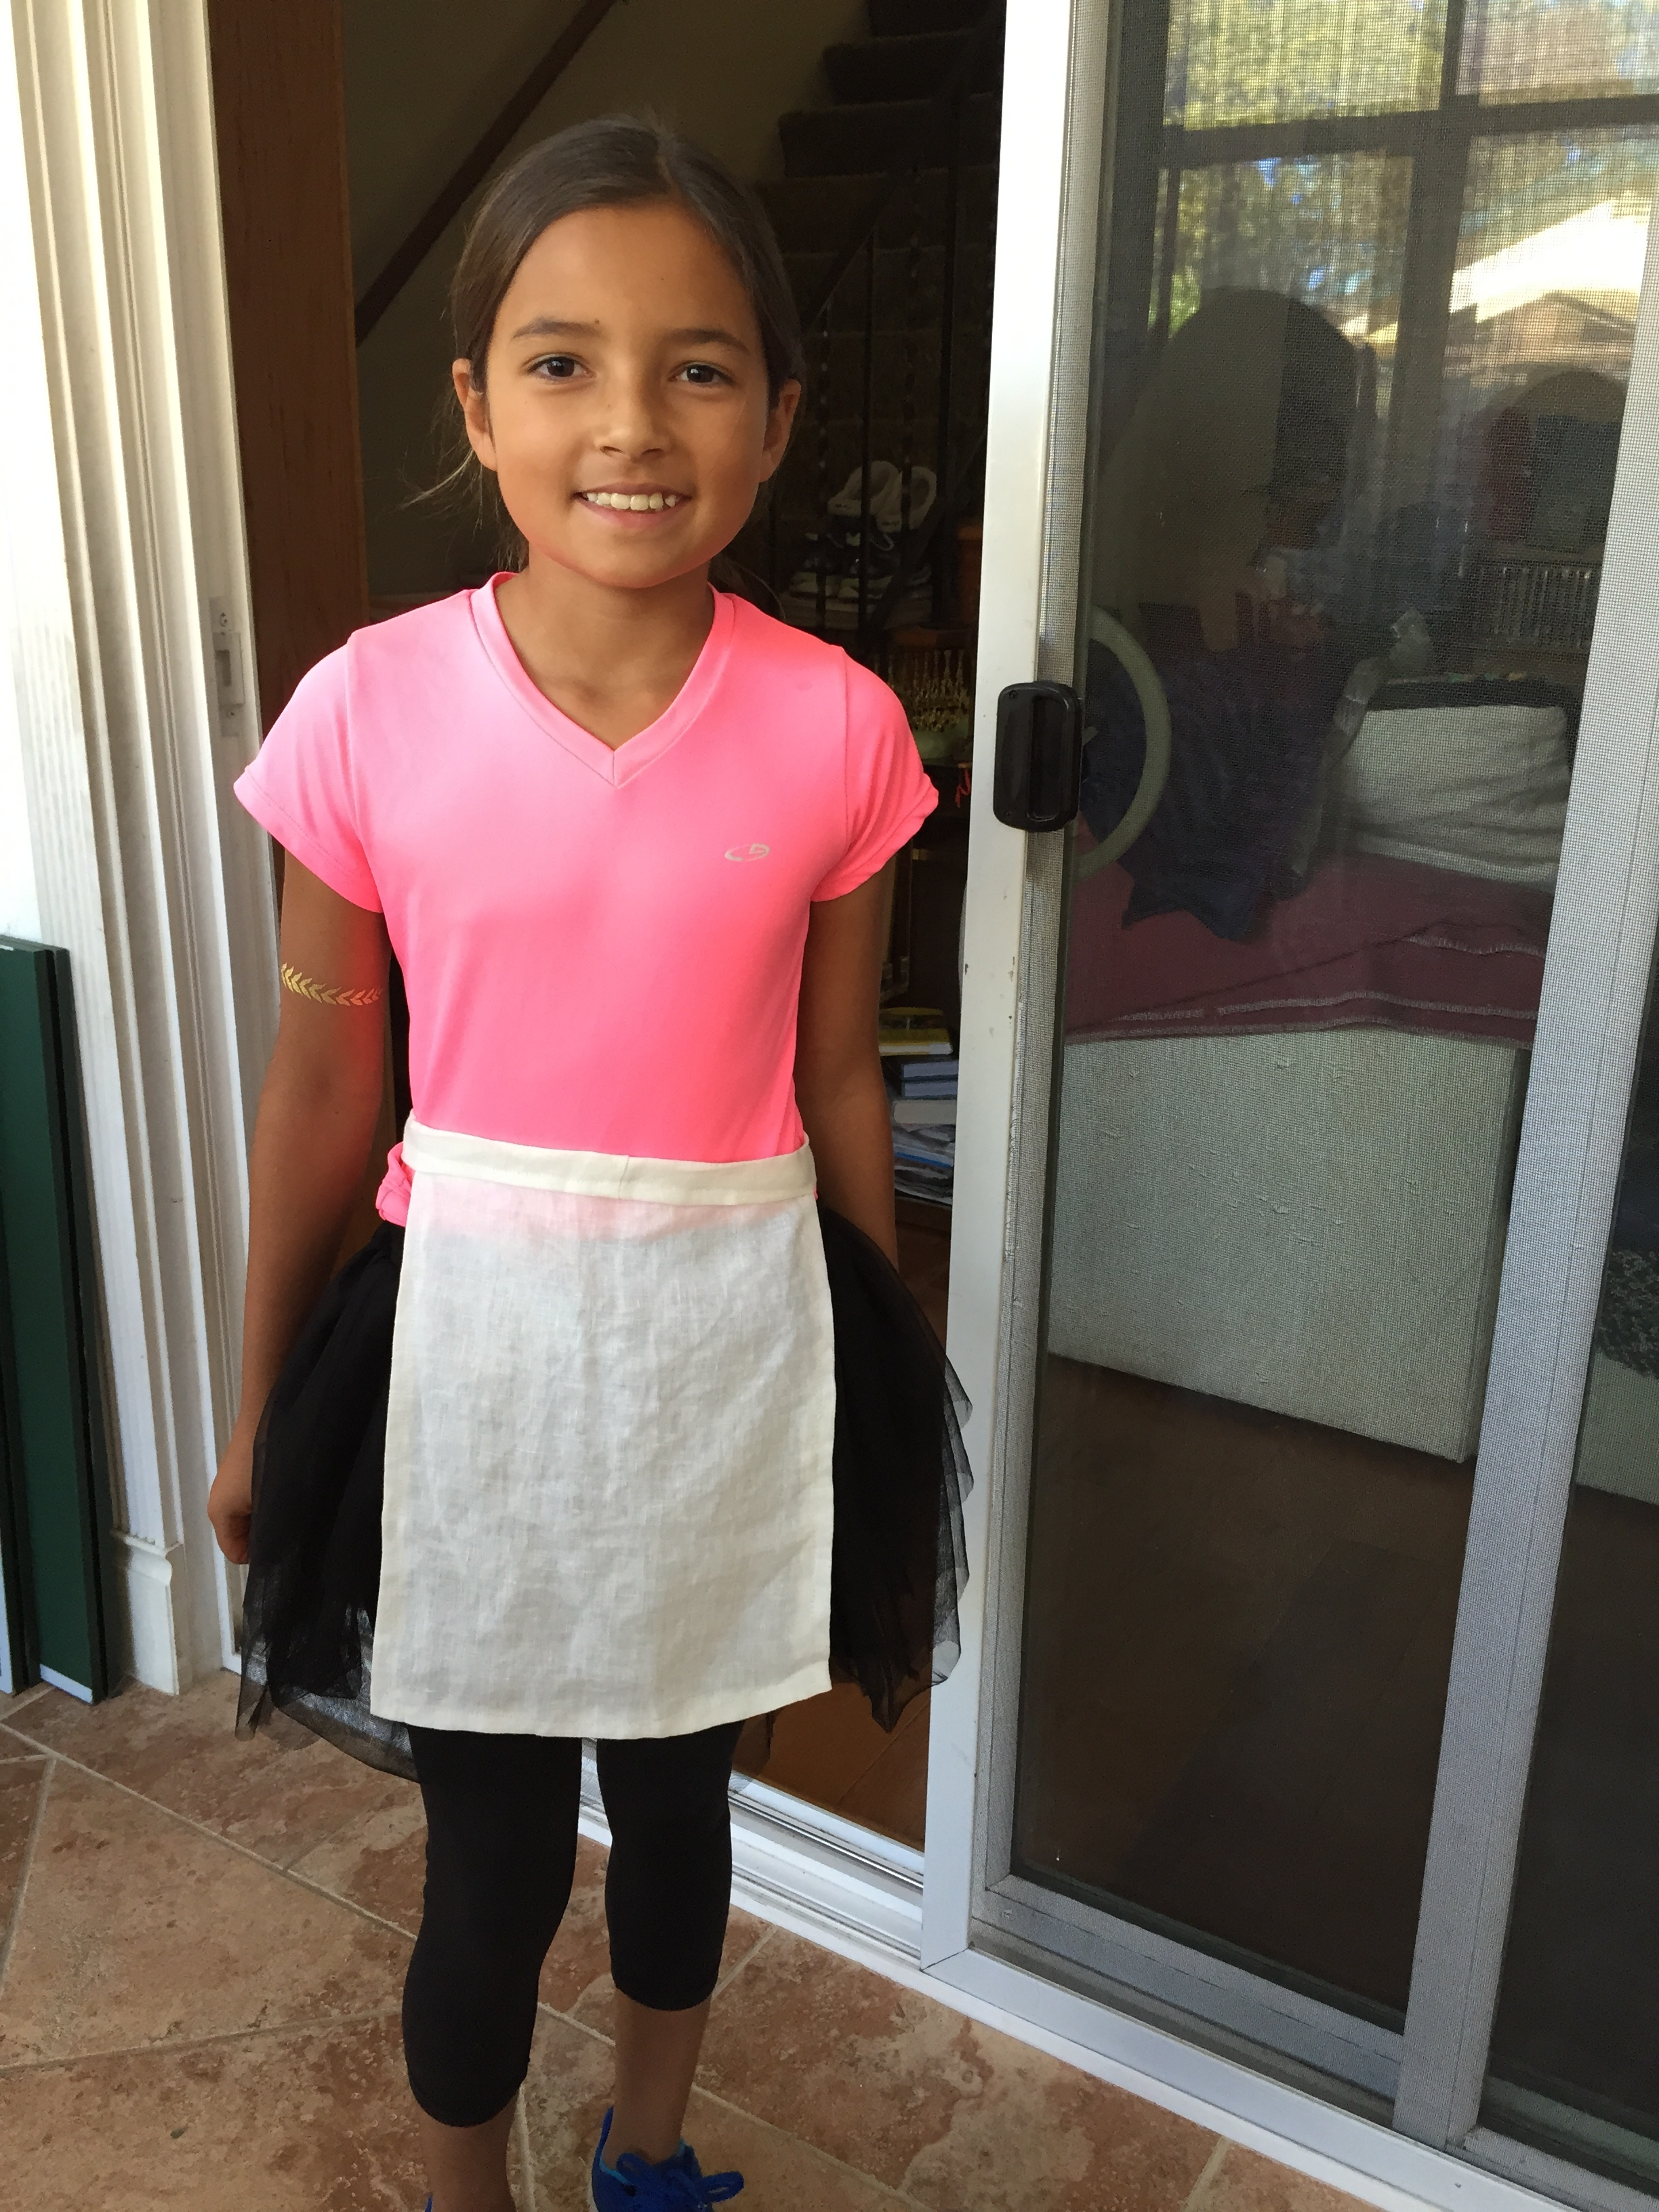 Apron for her Halloween Costume.